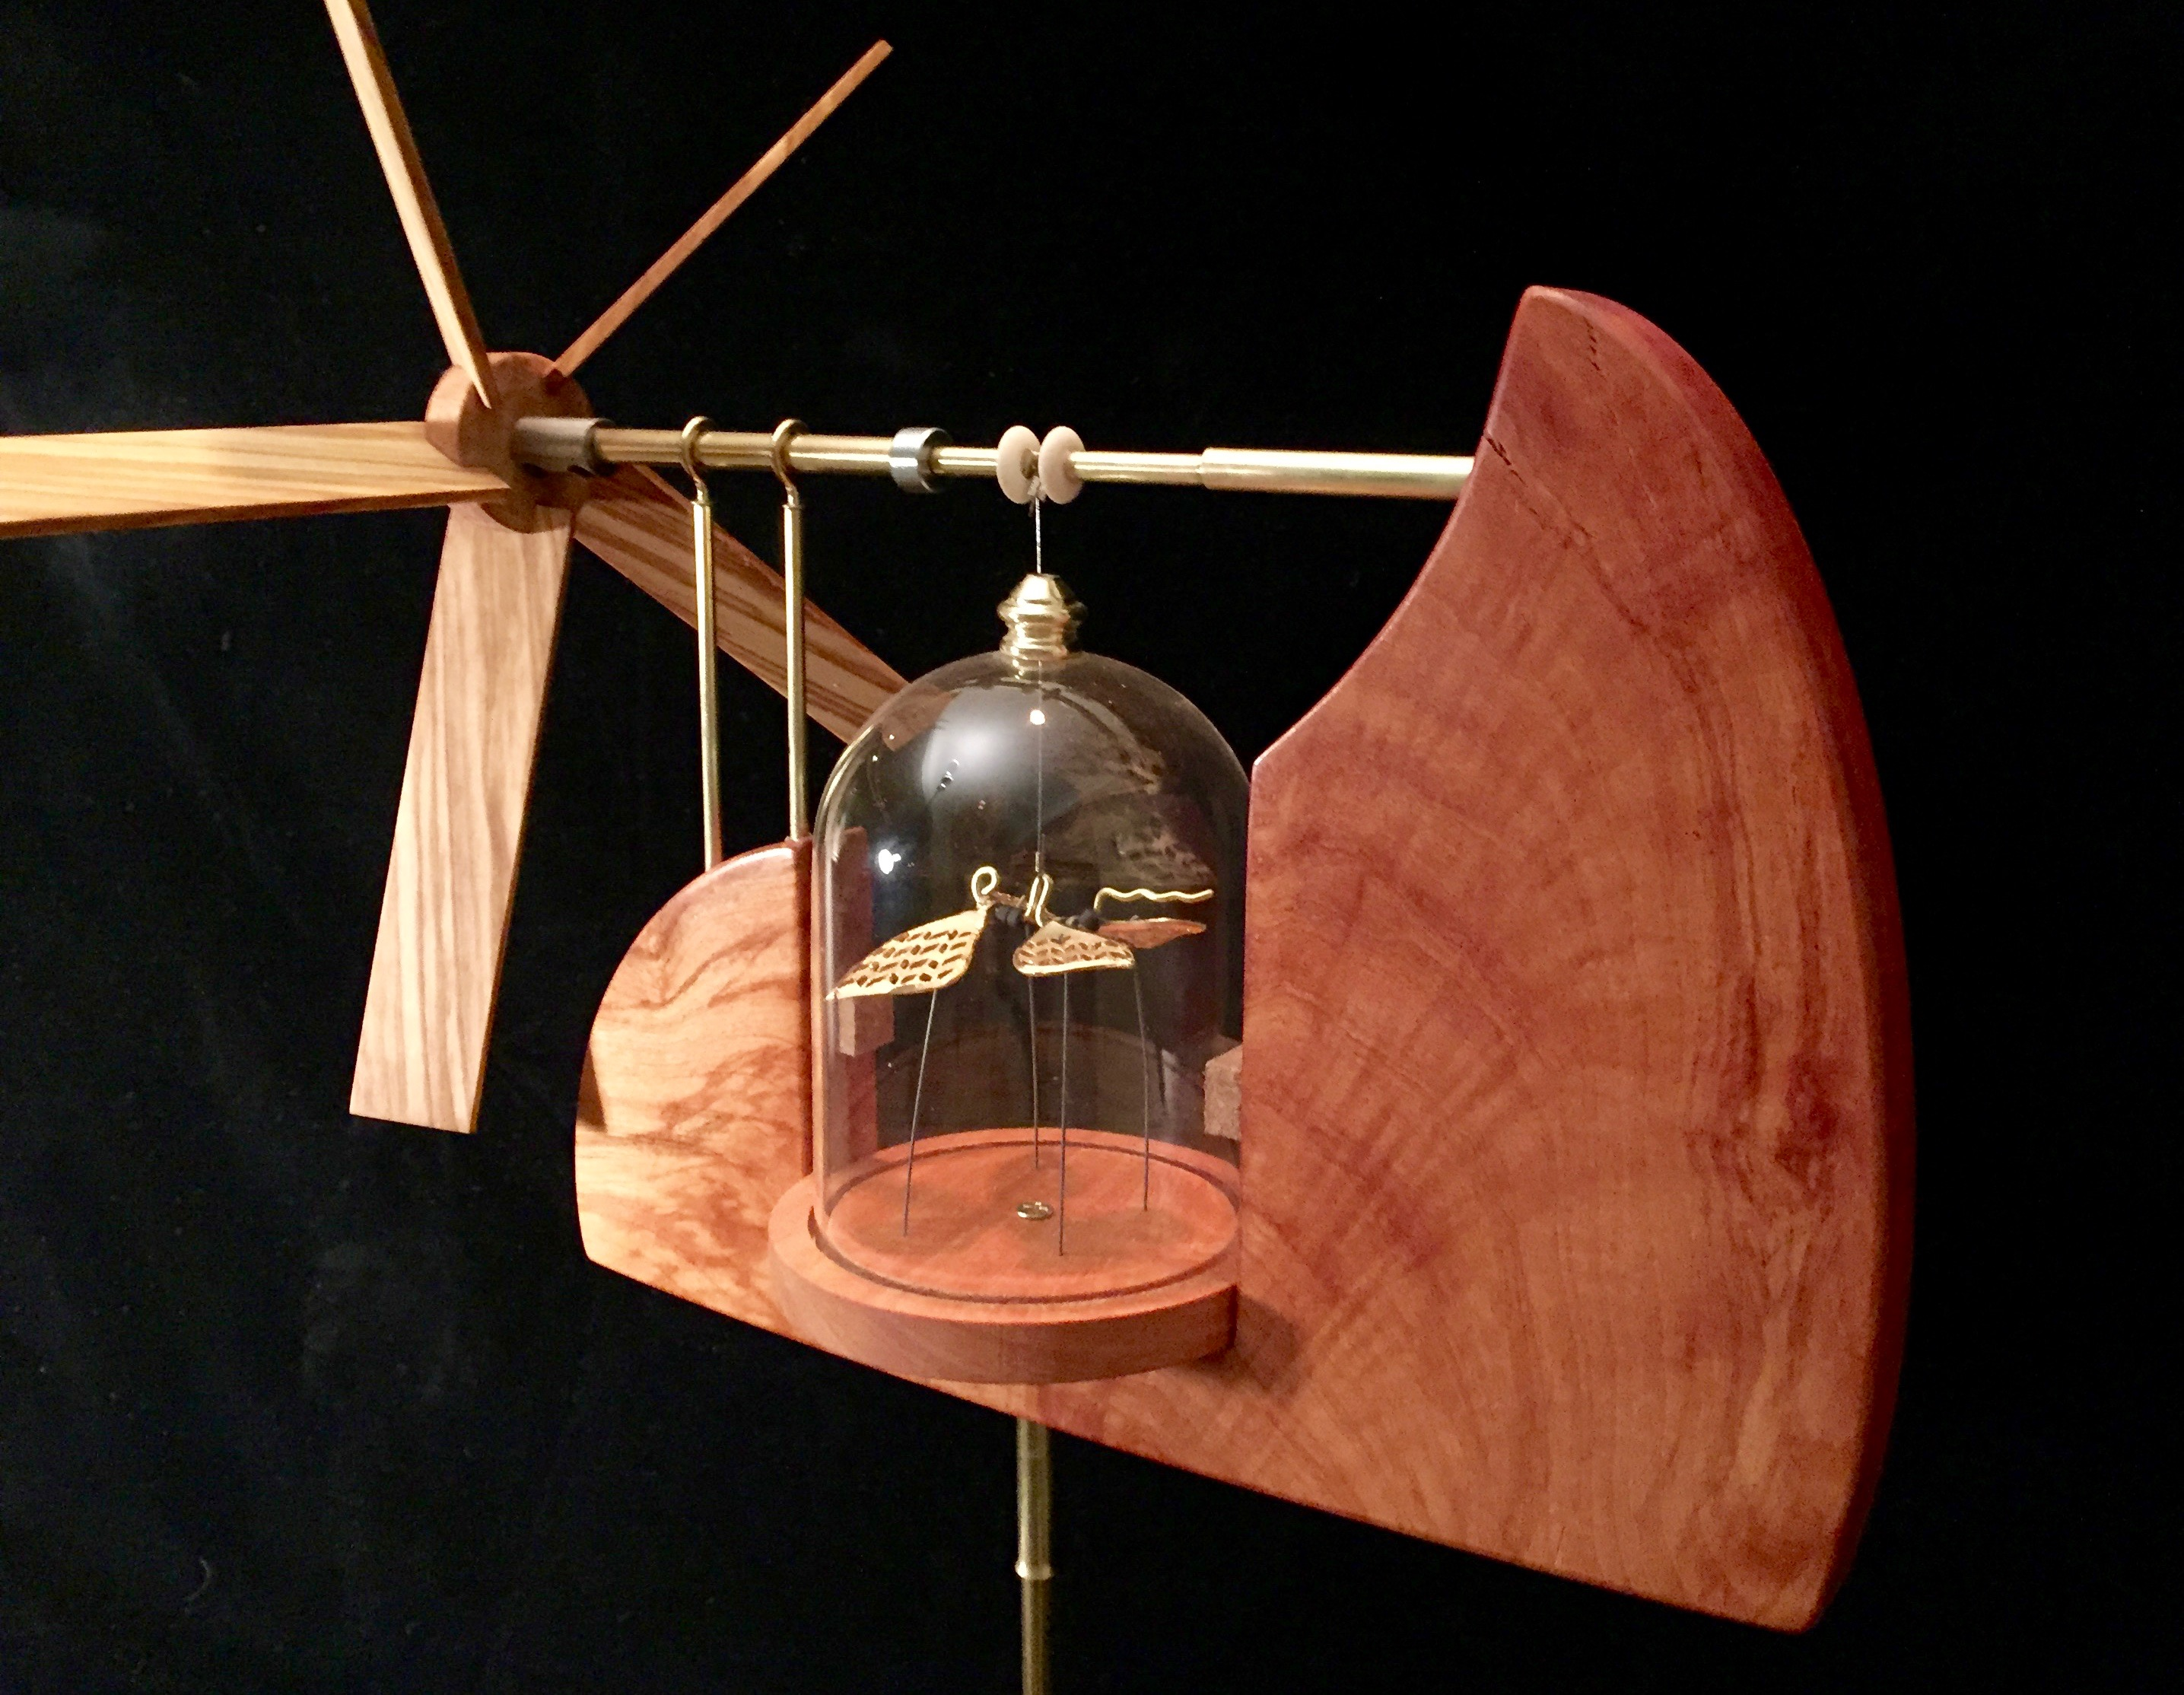 Glass Dome Whirligig